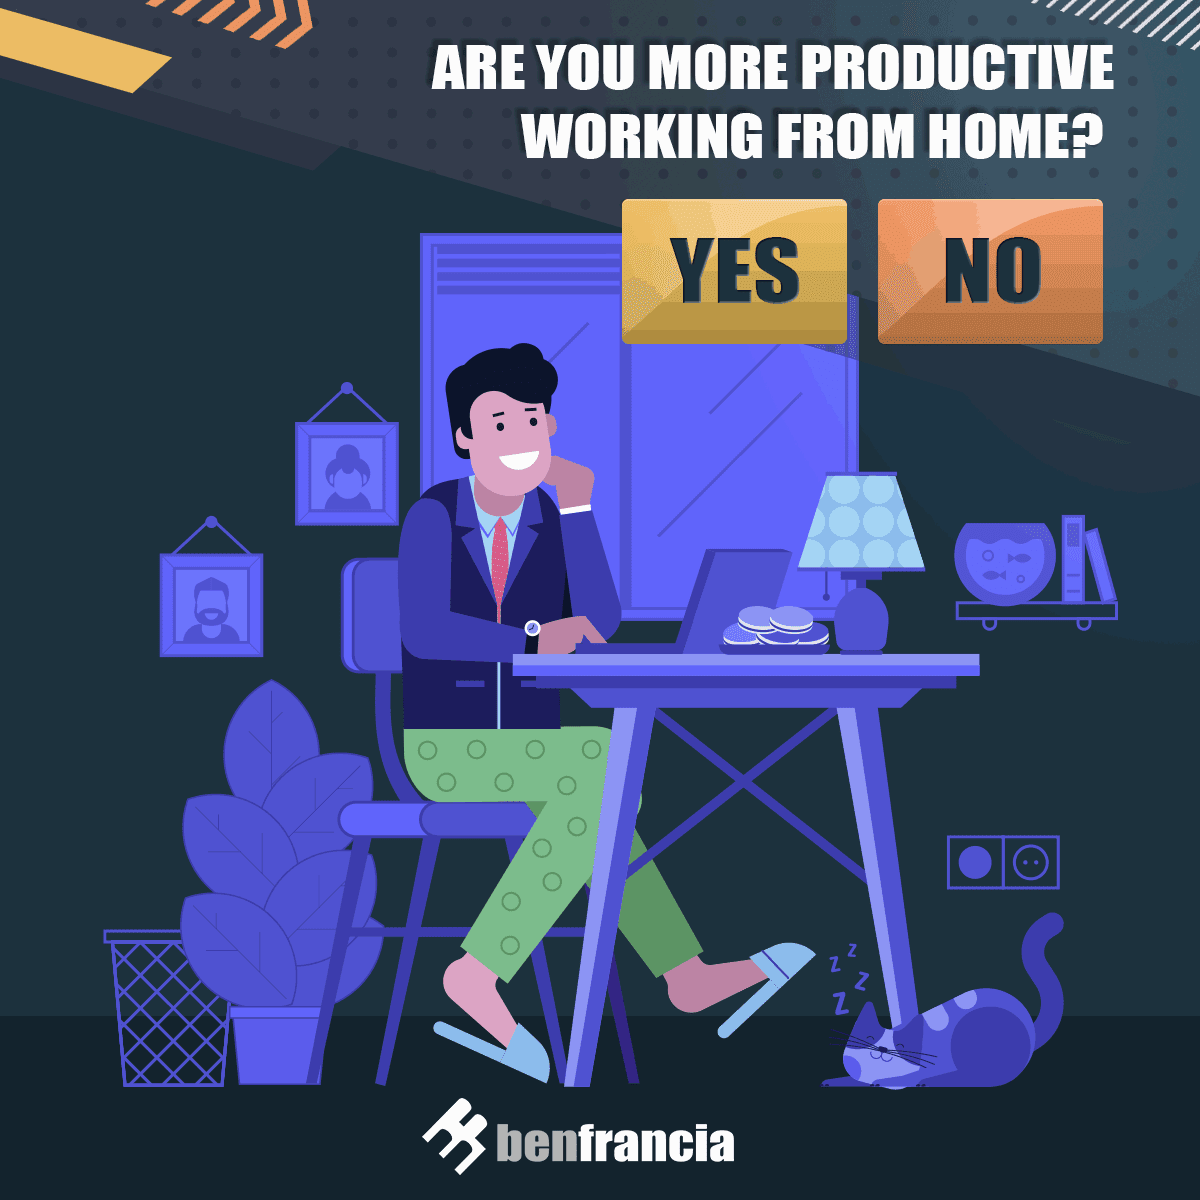 #TeamOffice or #TeamWFH? What works best for you?  Learn more about WFH Productivity here: https://t.co/xvYZuNXjSo   #DigitalMarketing https://t.co/5I6utQhNJL